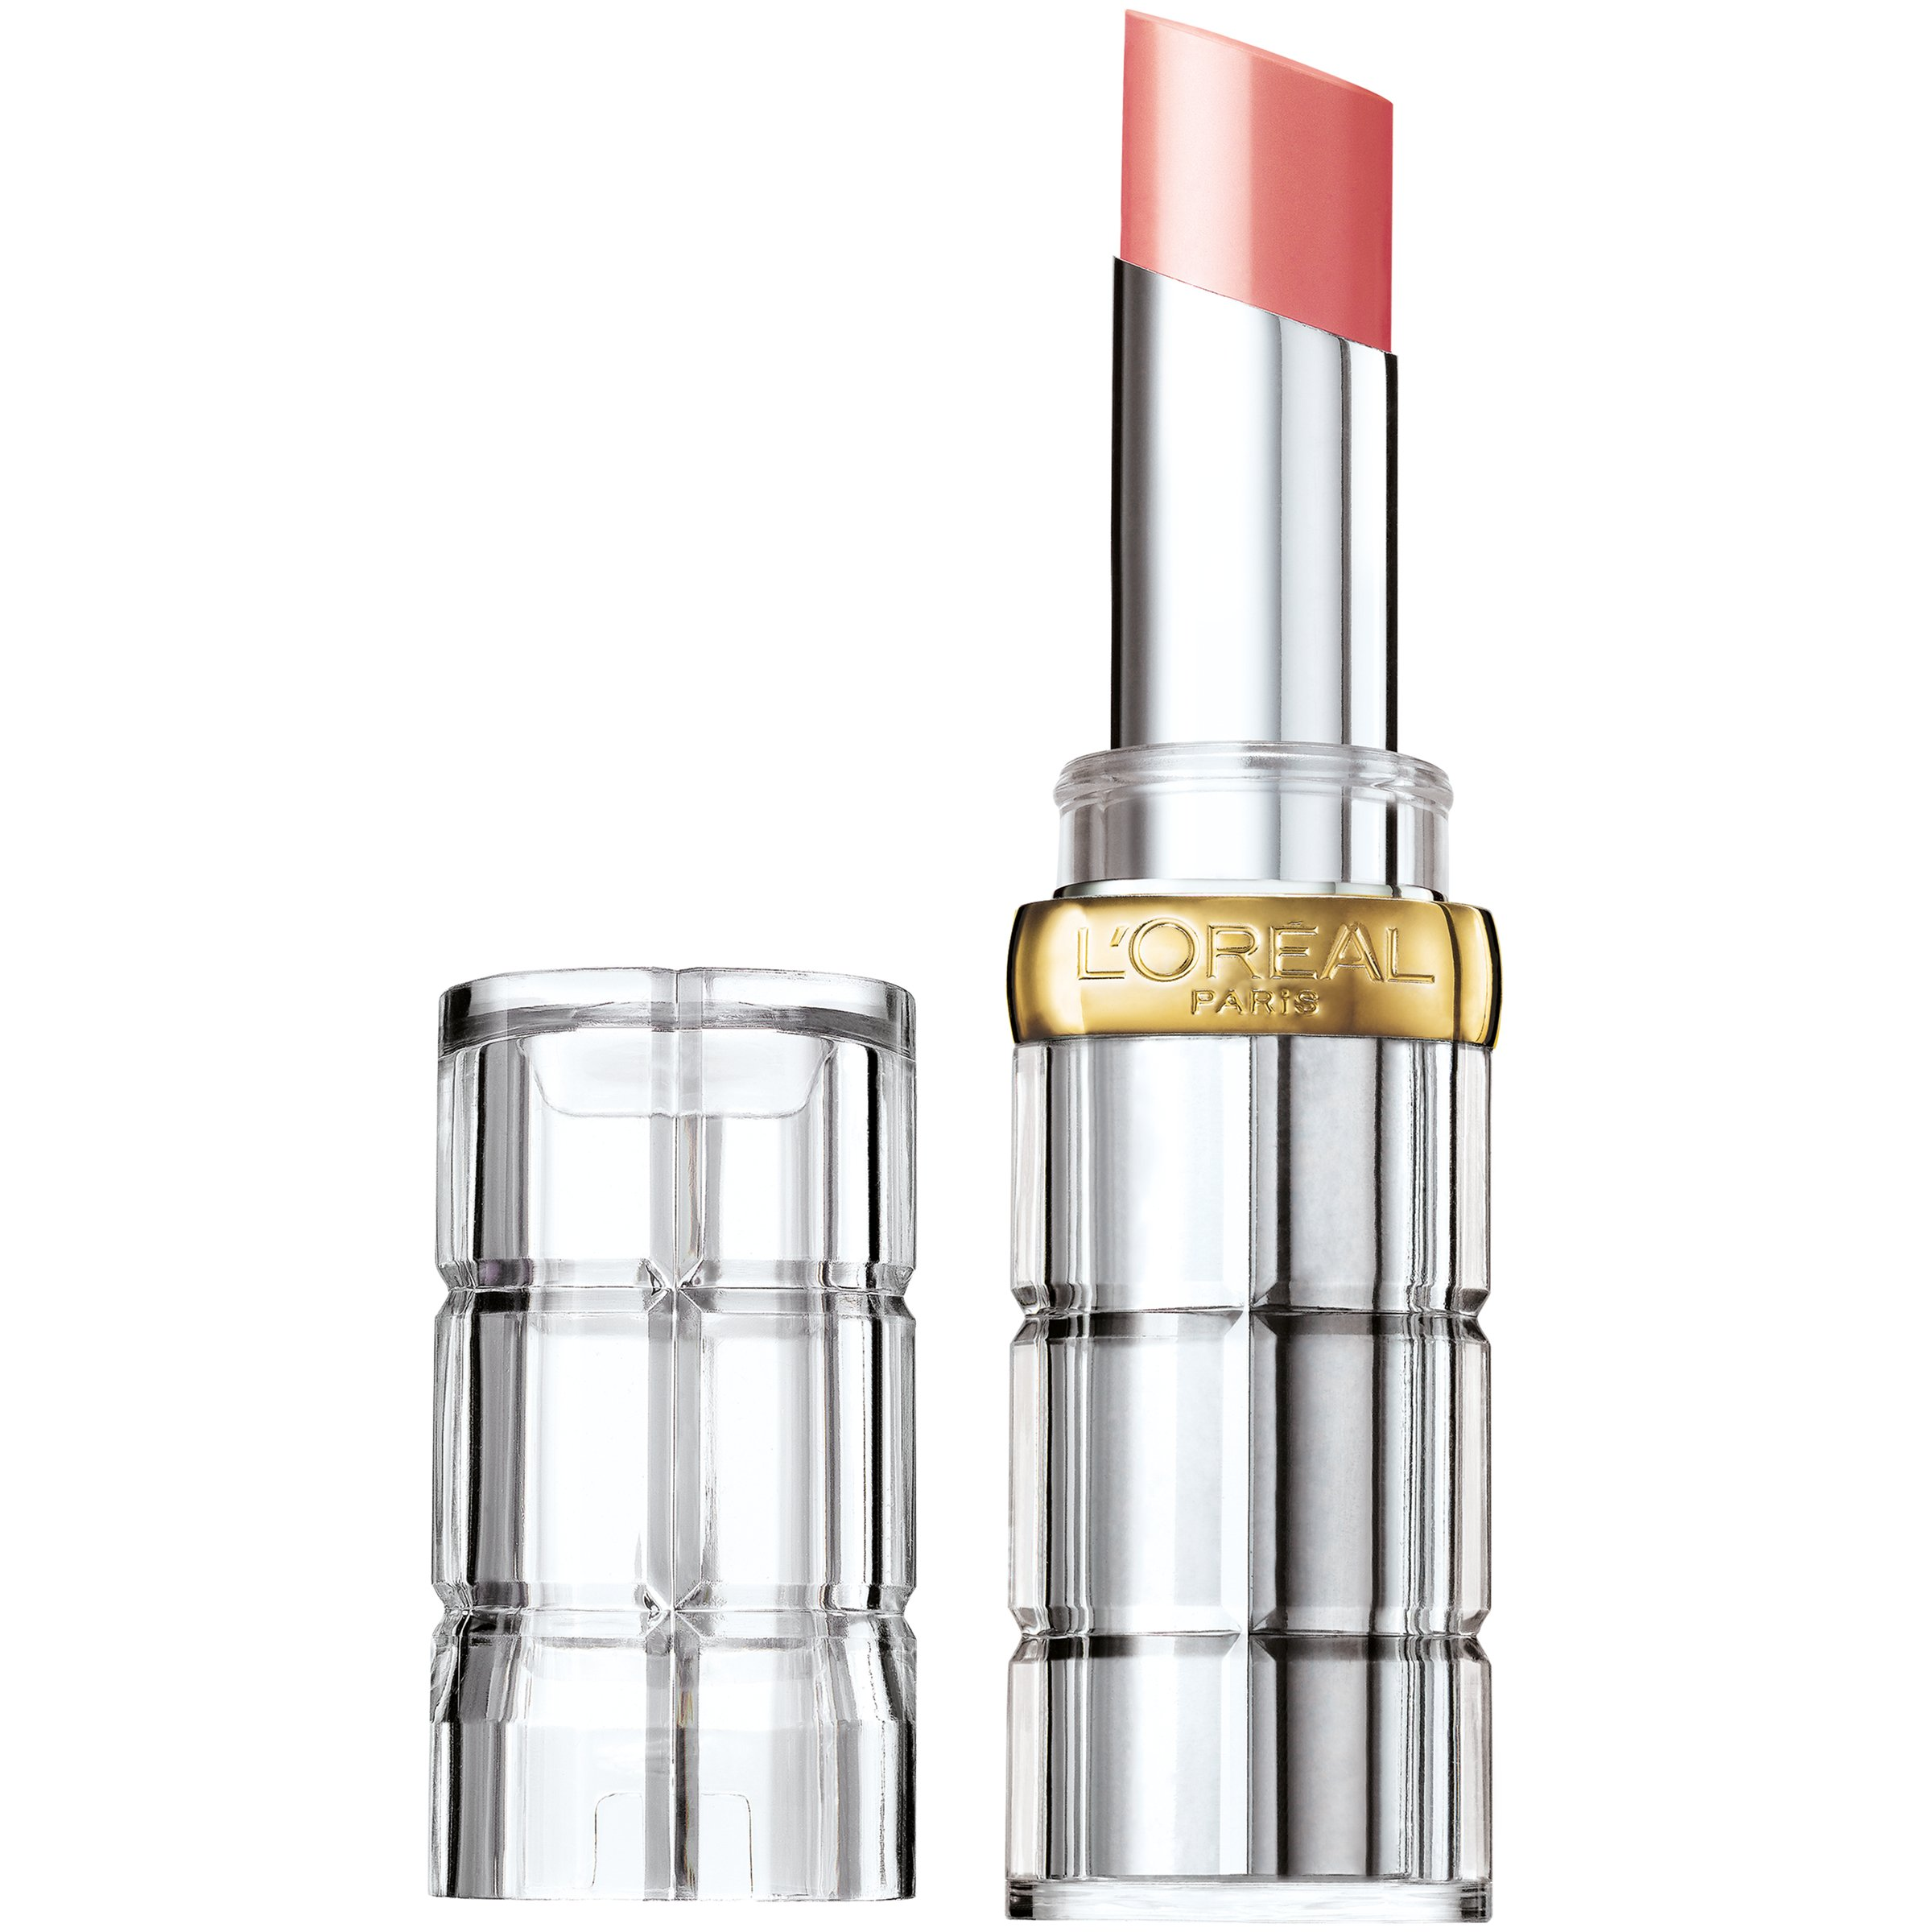 L'Oréal Paris Makeup Colour Riche Shine Lipstick